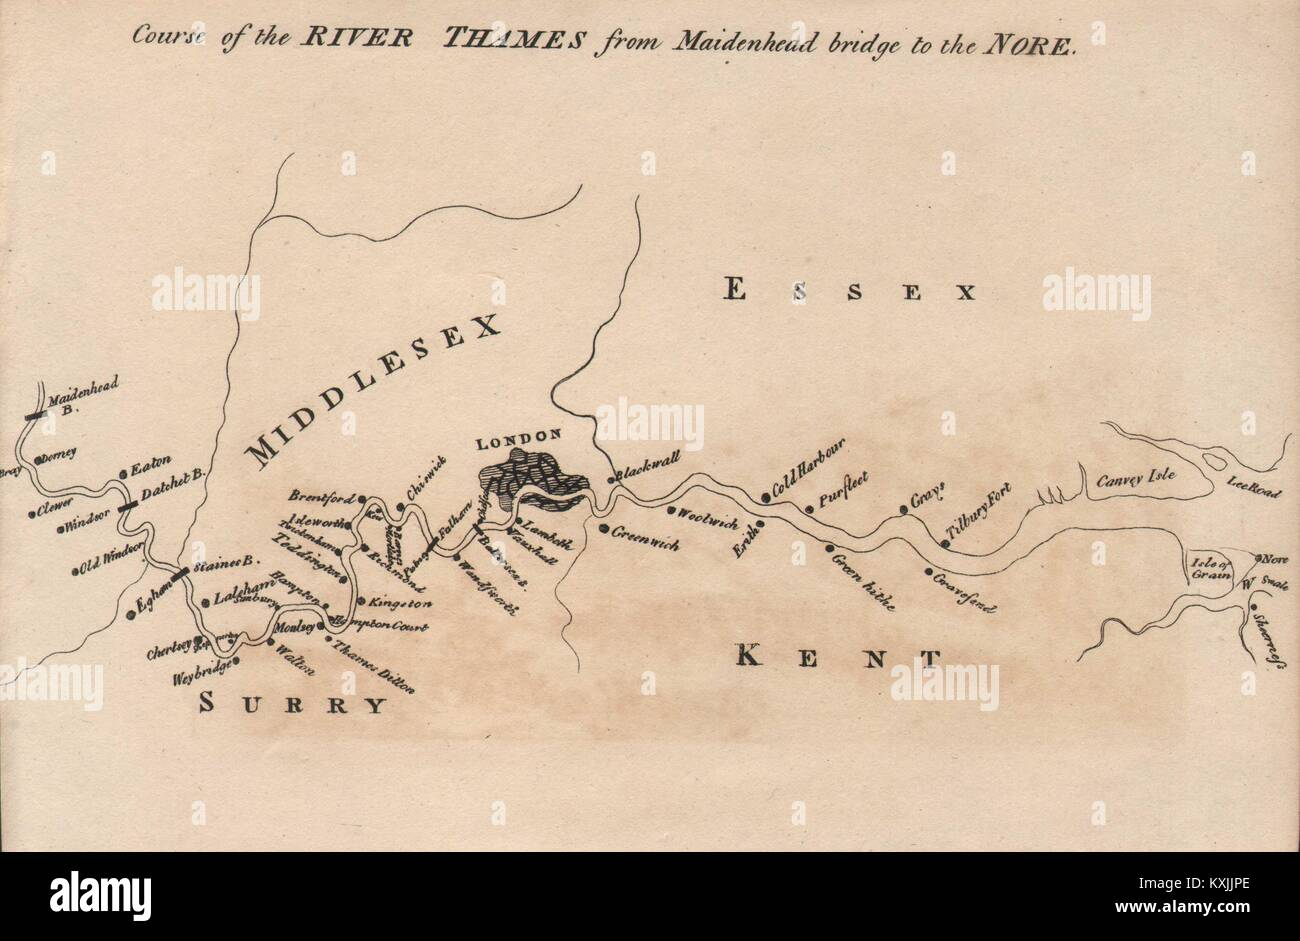 Course of the River Thames from Maidenhead bridge to the Nore 1792 old map - Stock Image